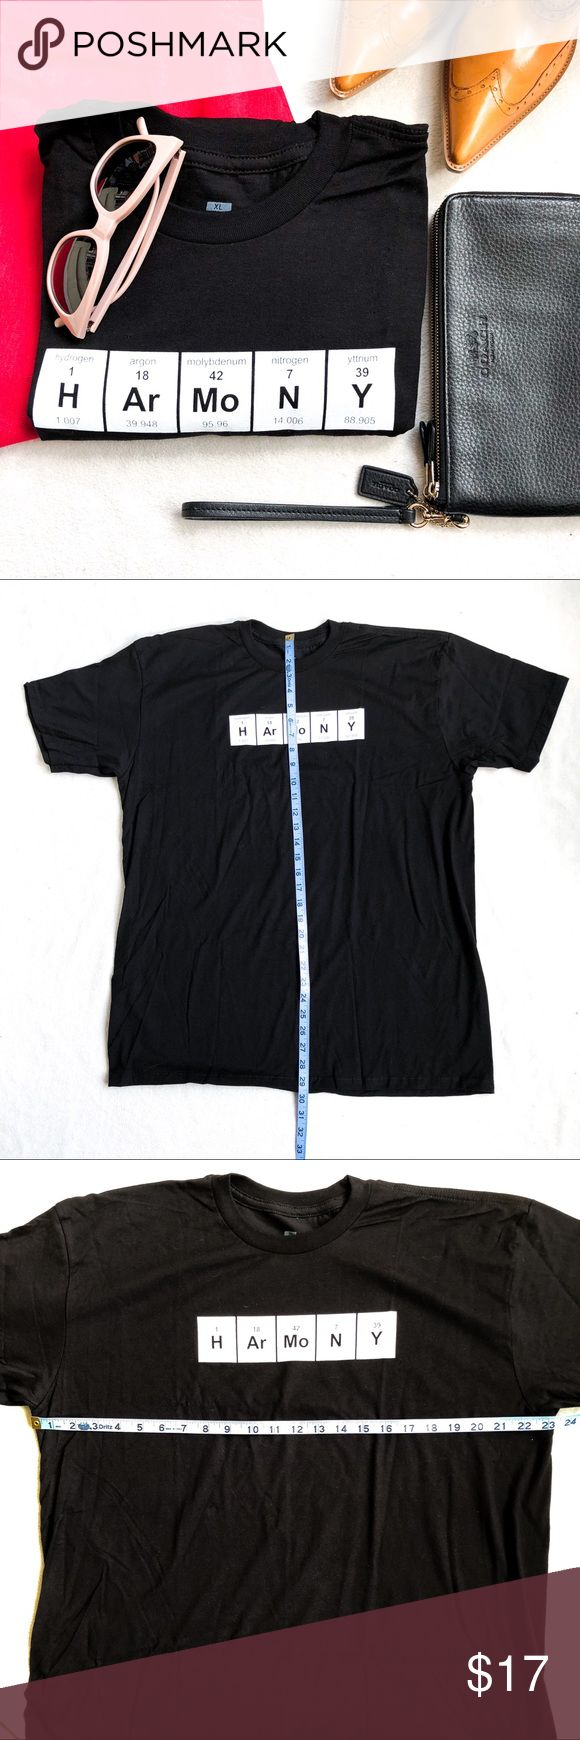 NWT Periodic Table Harmony T-Shirt NWT Periodic Table Symbol Spelling 'Harmony' T-Shirt Black w/ White Print Unisex Fit Size XL Package Opened Only For Photos ThinkGeek Tops Tees - Short Sleeve